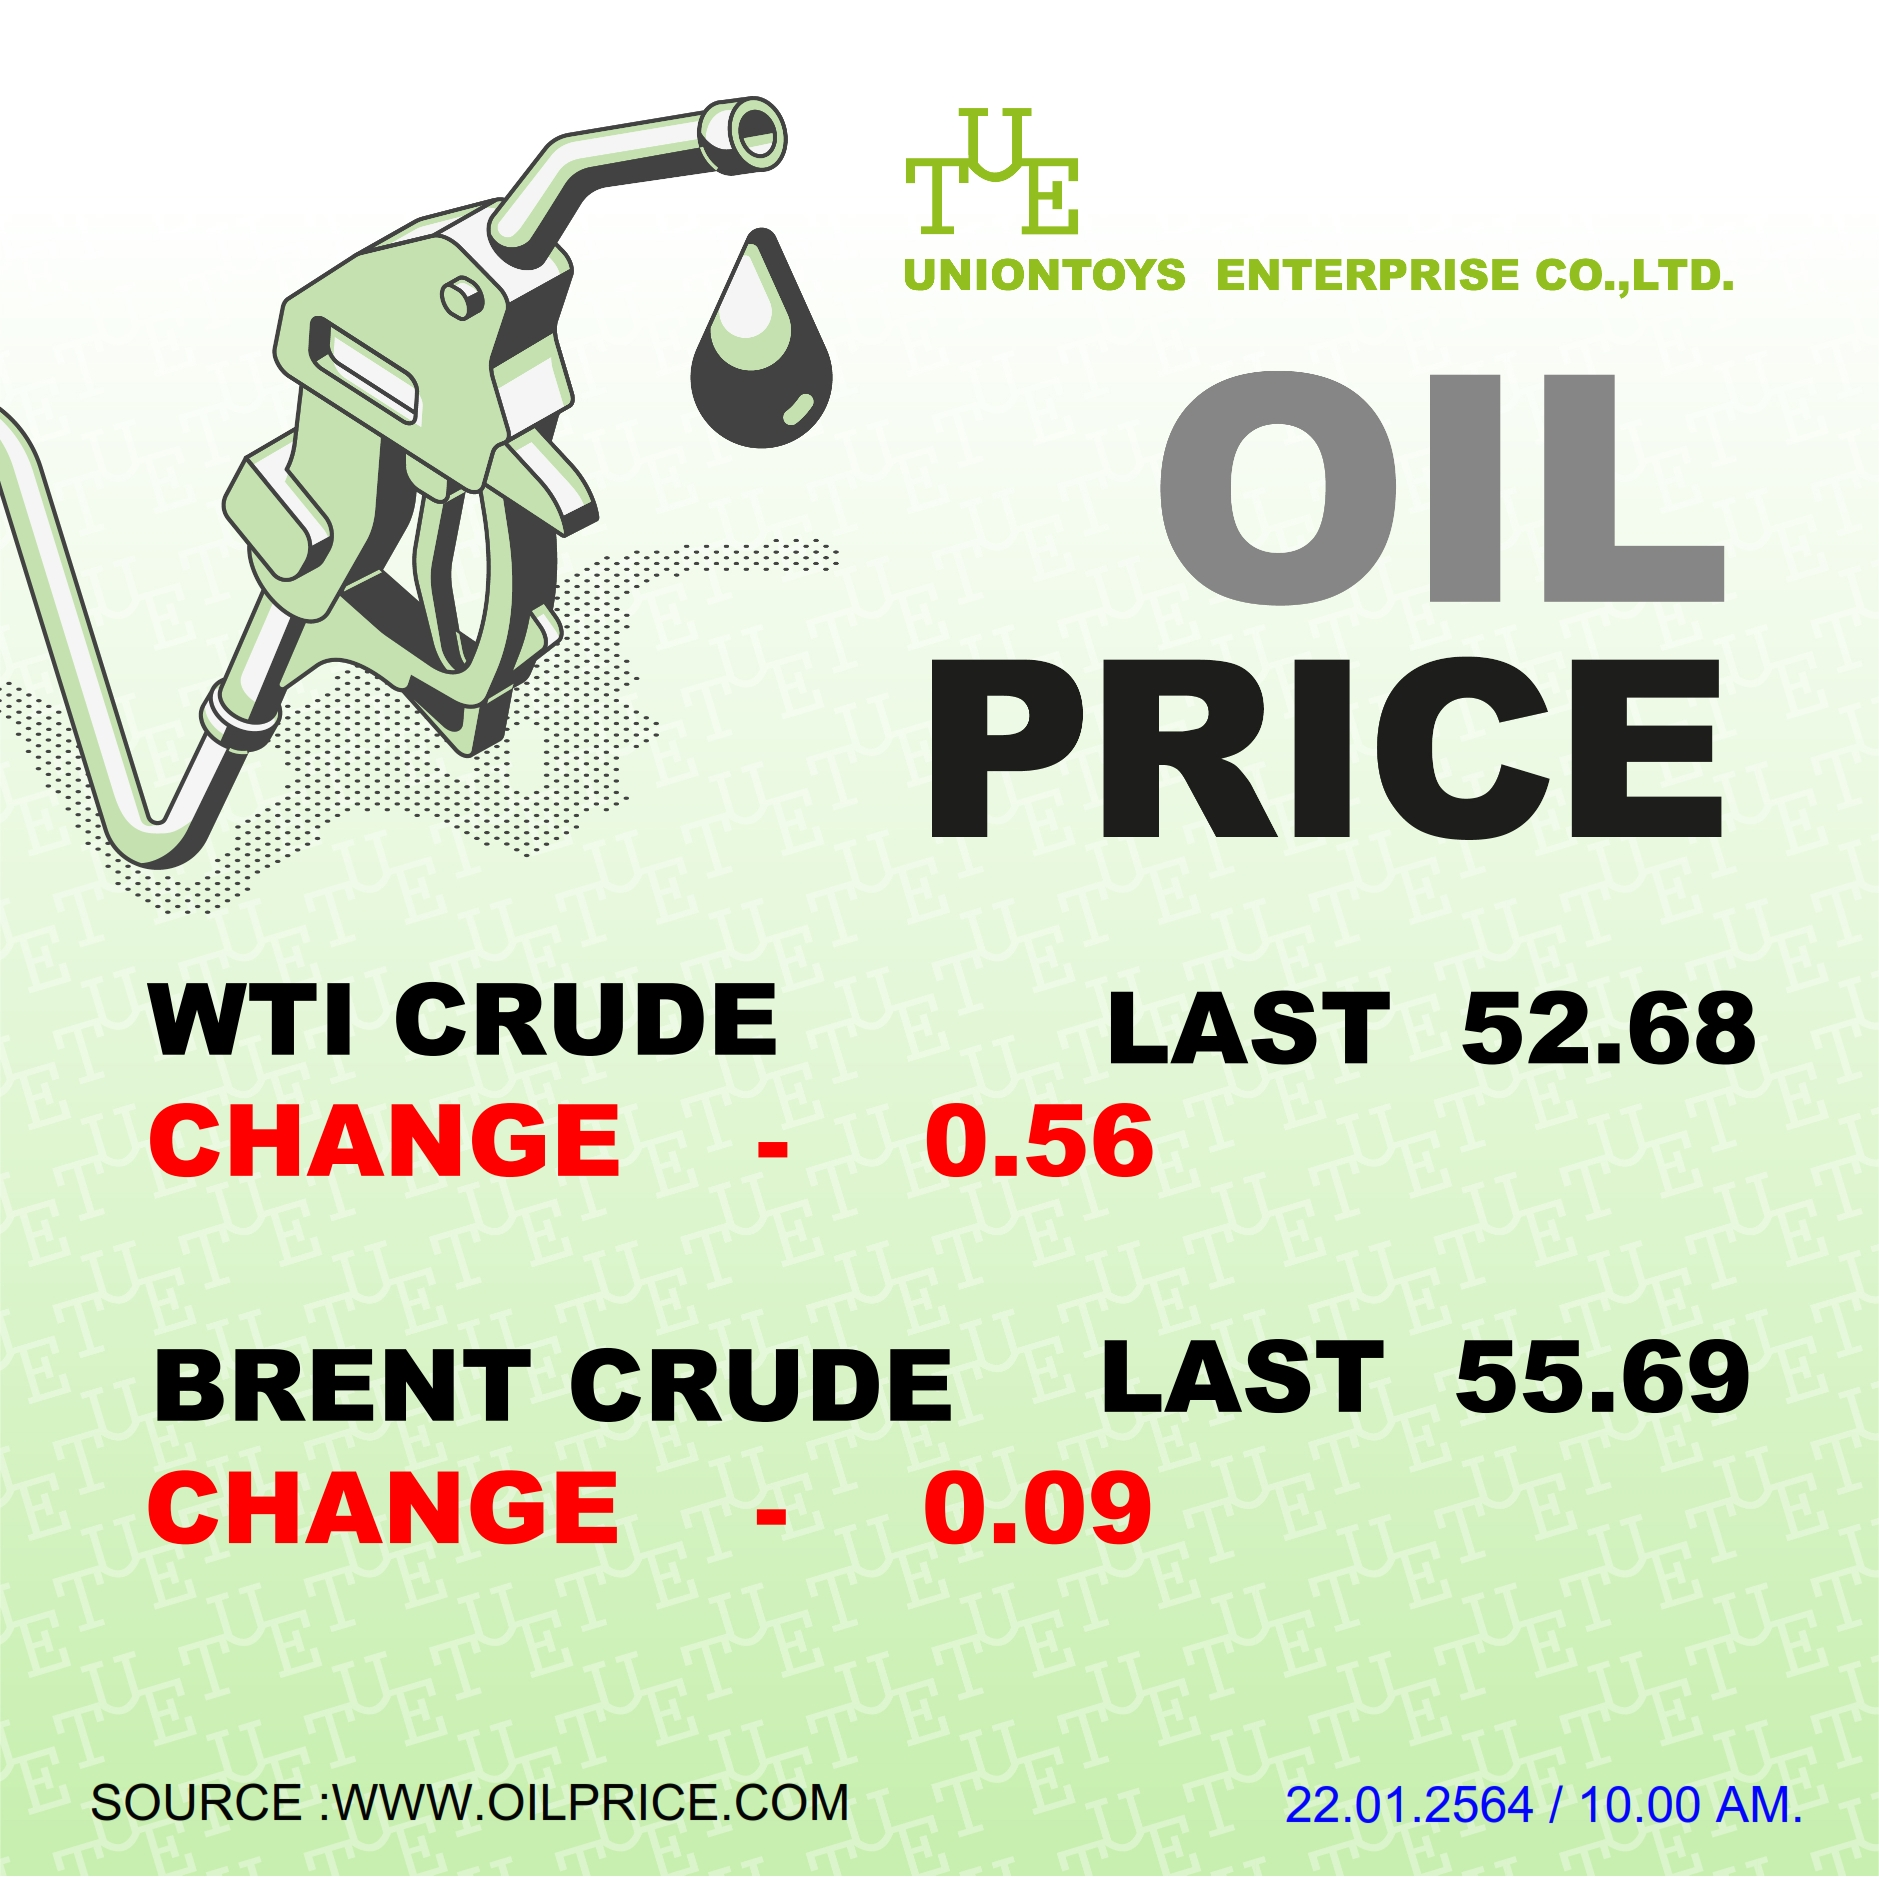 Uniontoys Oil Price Update - 22-01-2021